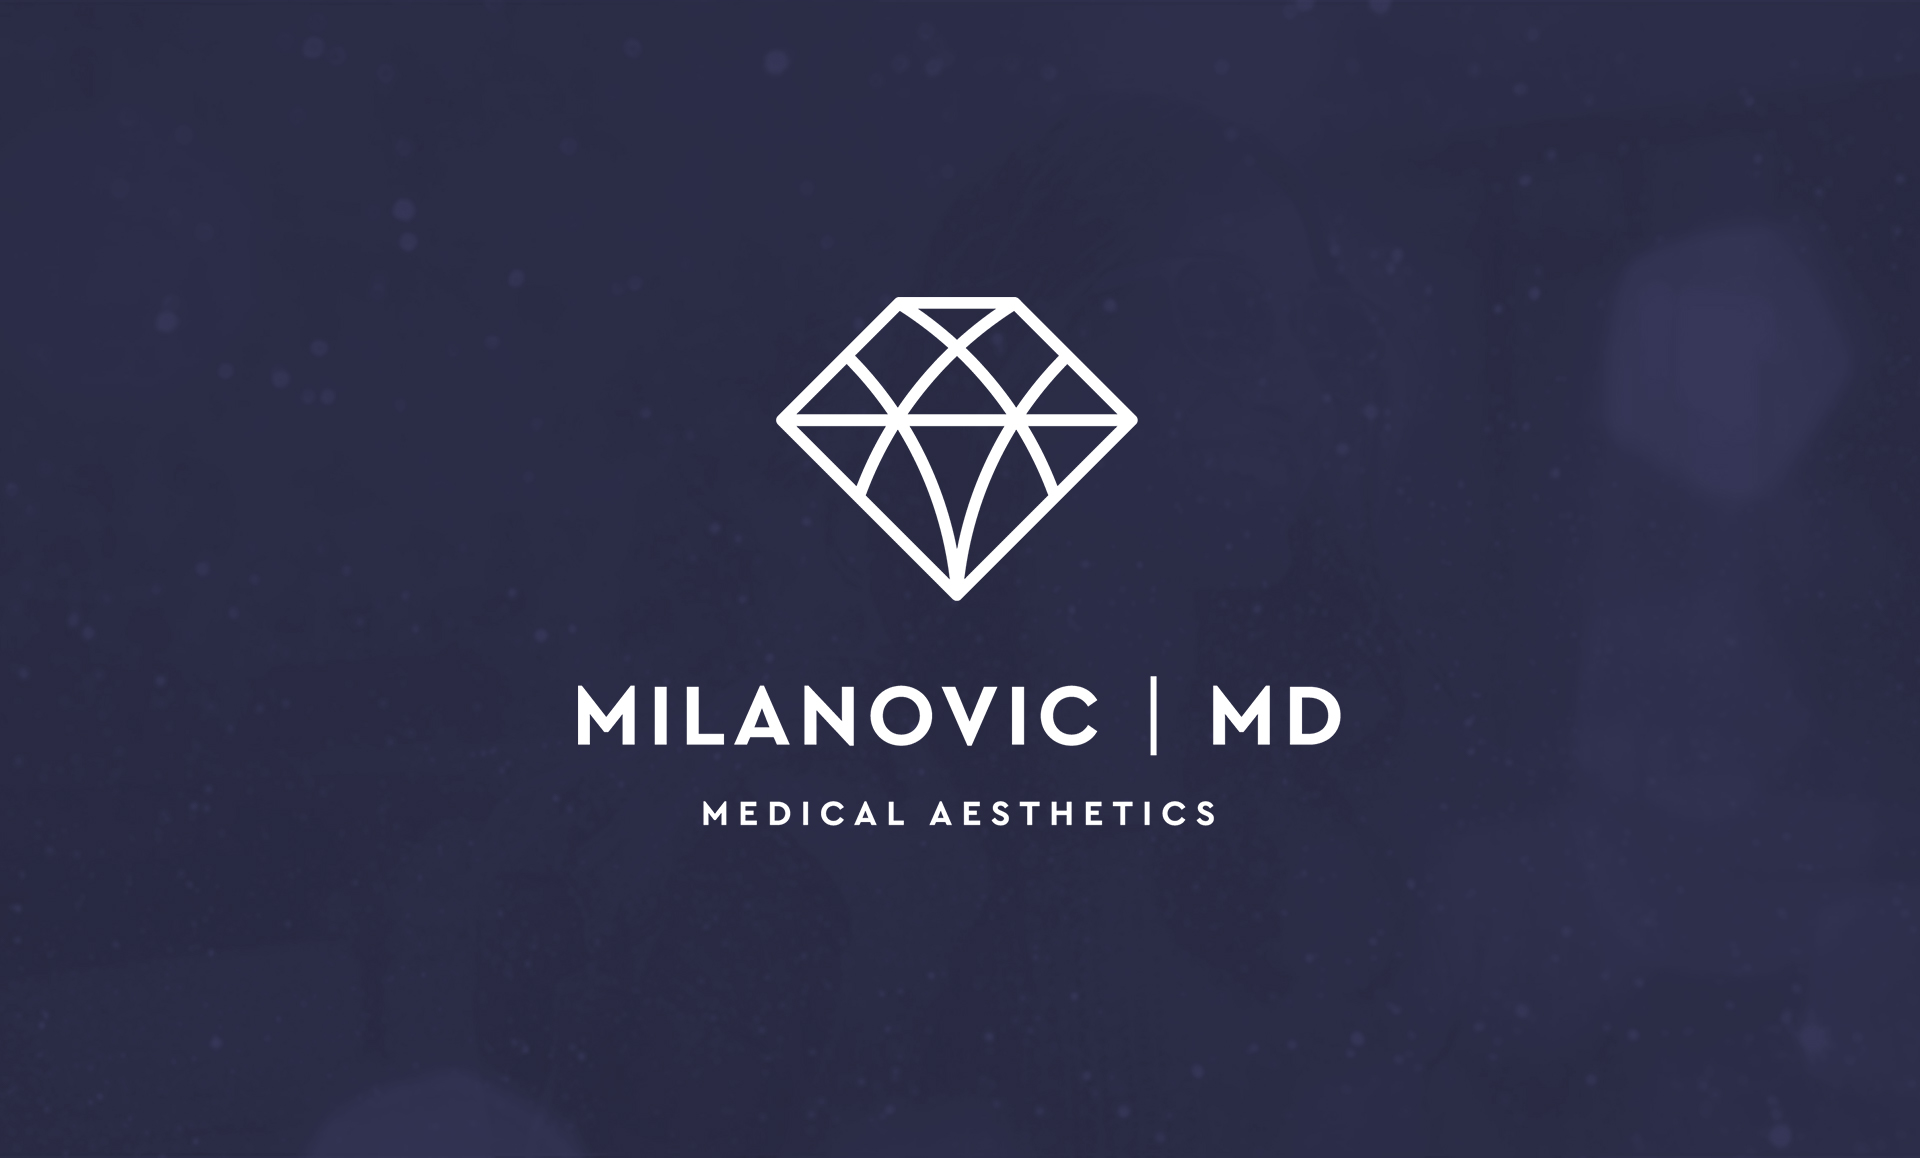 Read more on Dr. Milanovic